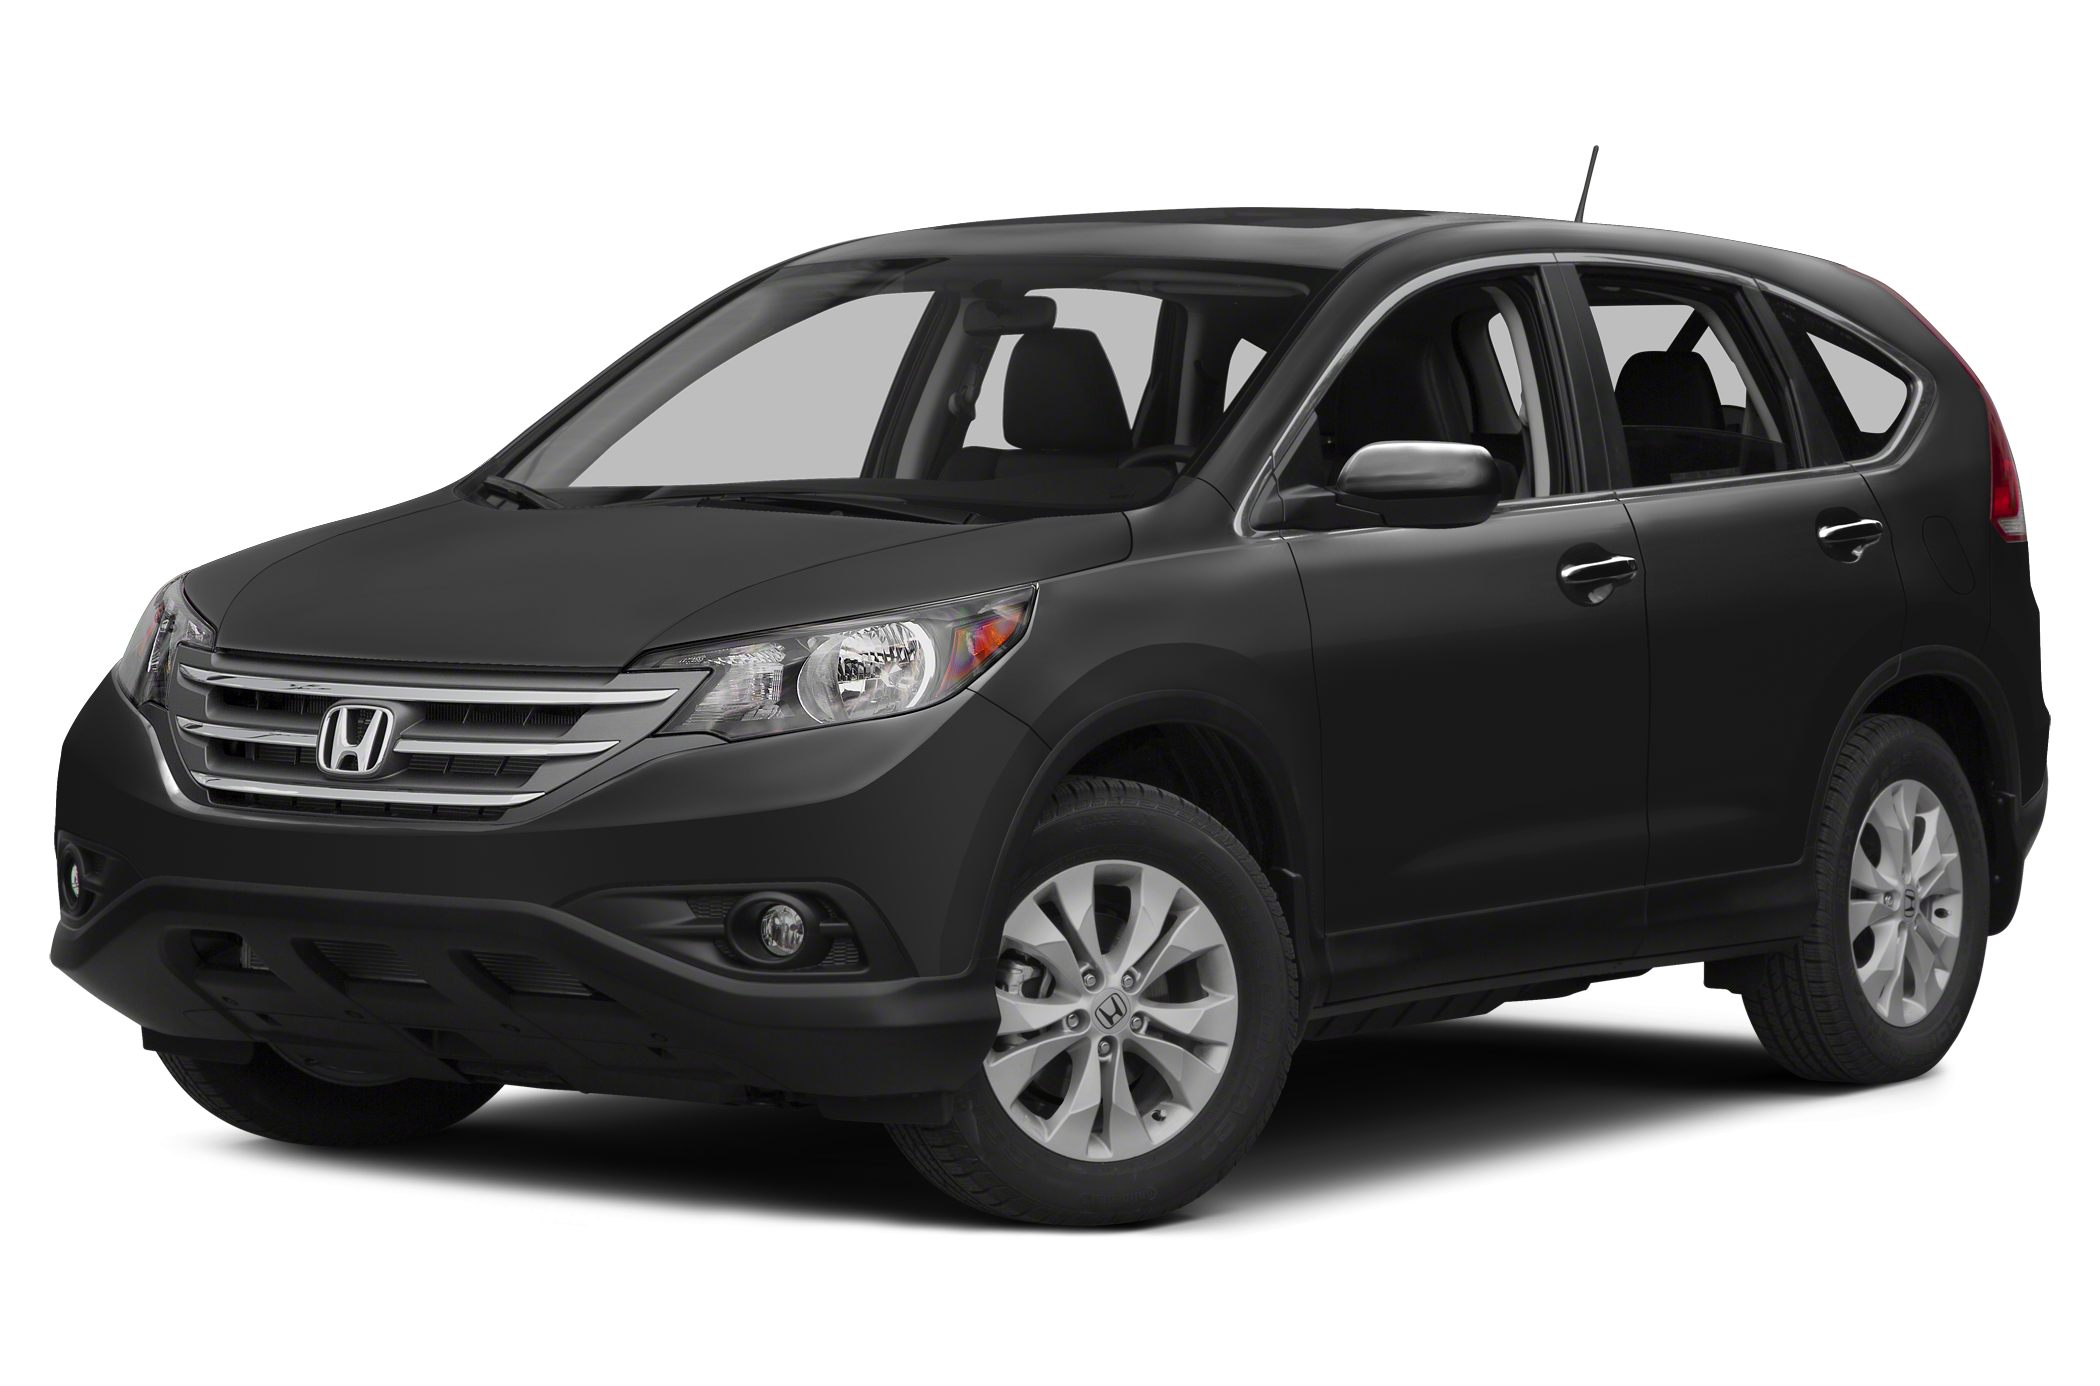 2014 Honda CR-V EX-L SUV for sale in Victoria for $29,298 with 15 miles.